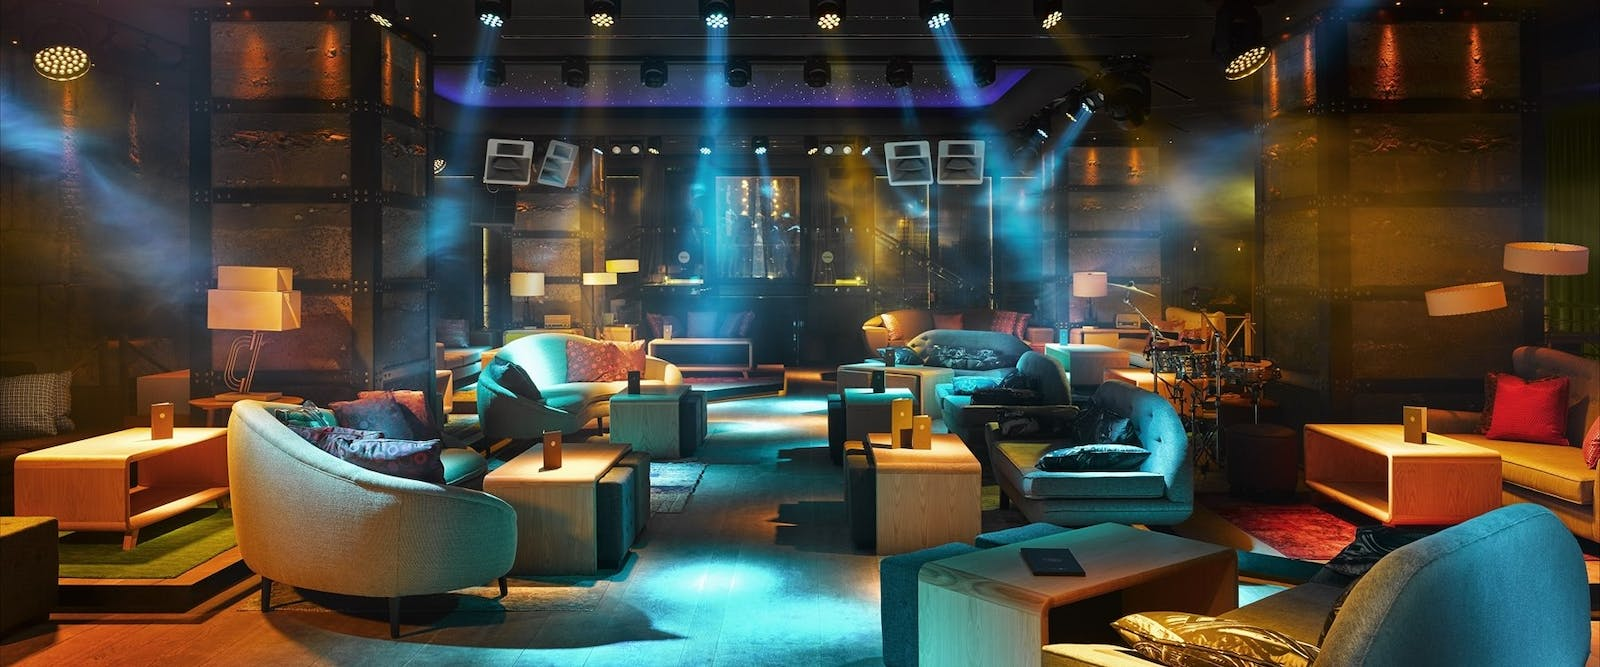 Night Club La Suite at Nobu Marbella, Costa Del Sol, Spain